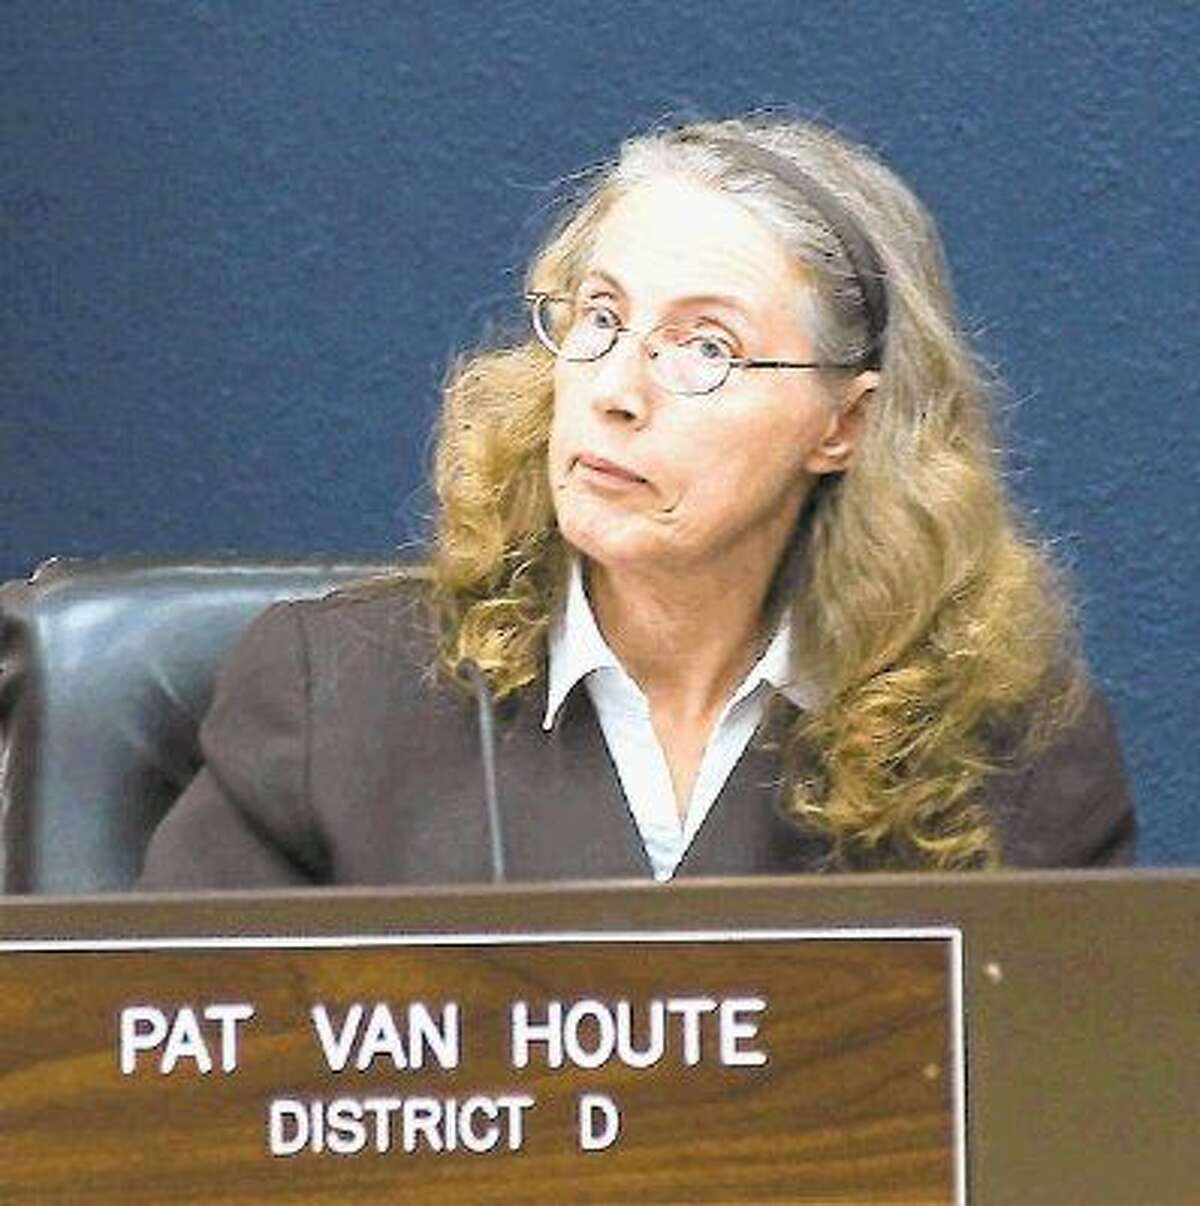 Pasadena Councilwoma Pat Van Houte, who is running for mayor, said she would drop the city's appeal of a judge's ruling in a voting rights case if she wins.